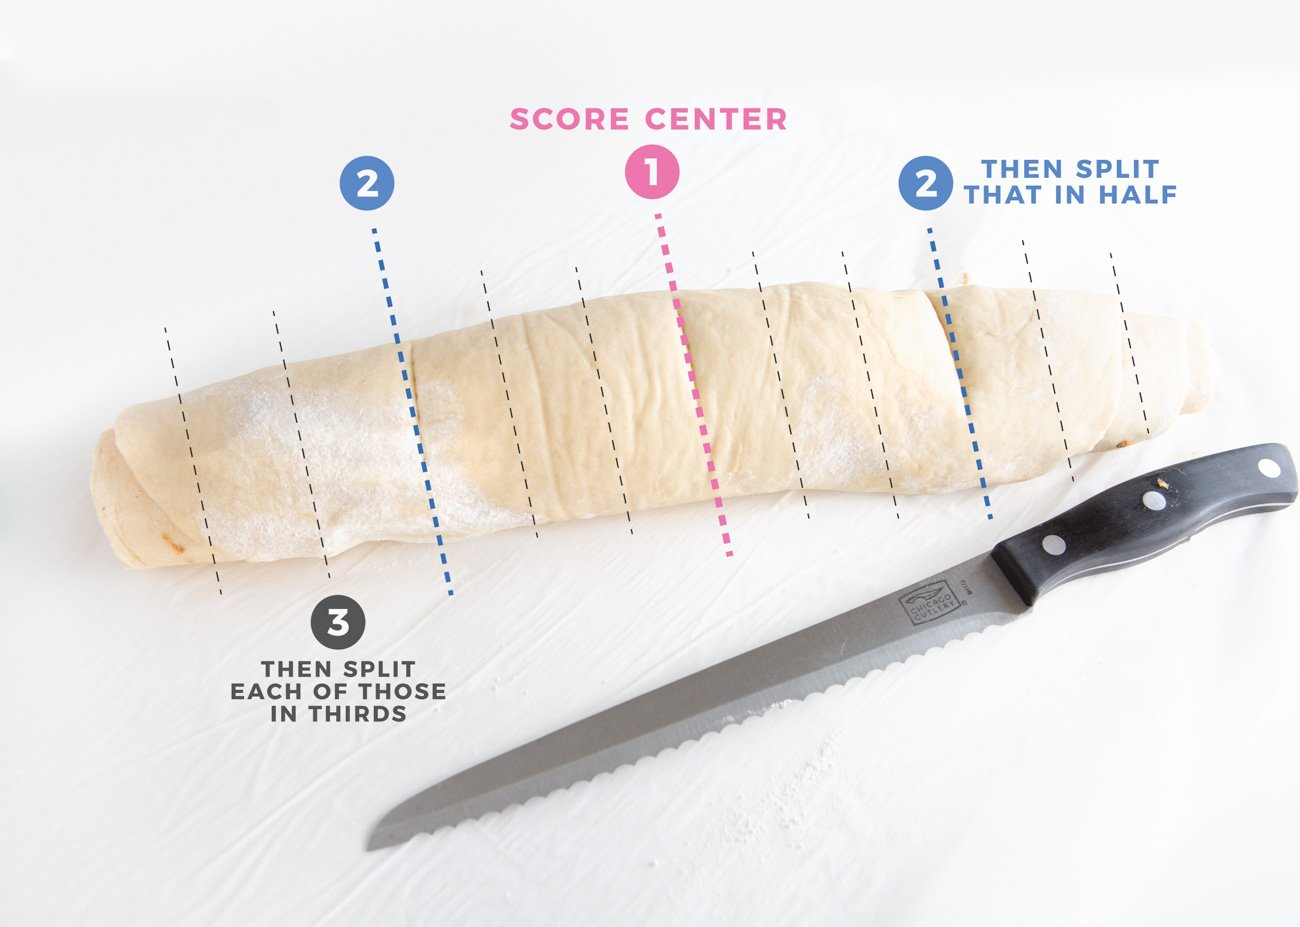 Diagram for cutting cinnamon roll dough into 12 even pieces with serrated edge knife